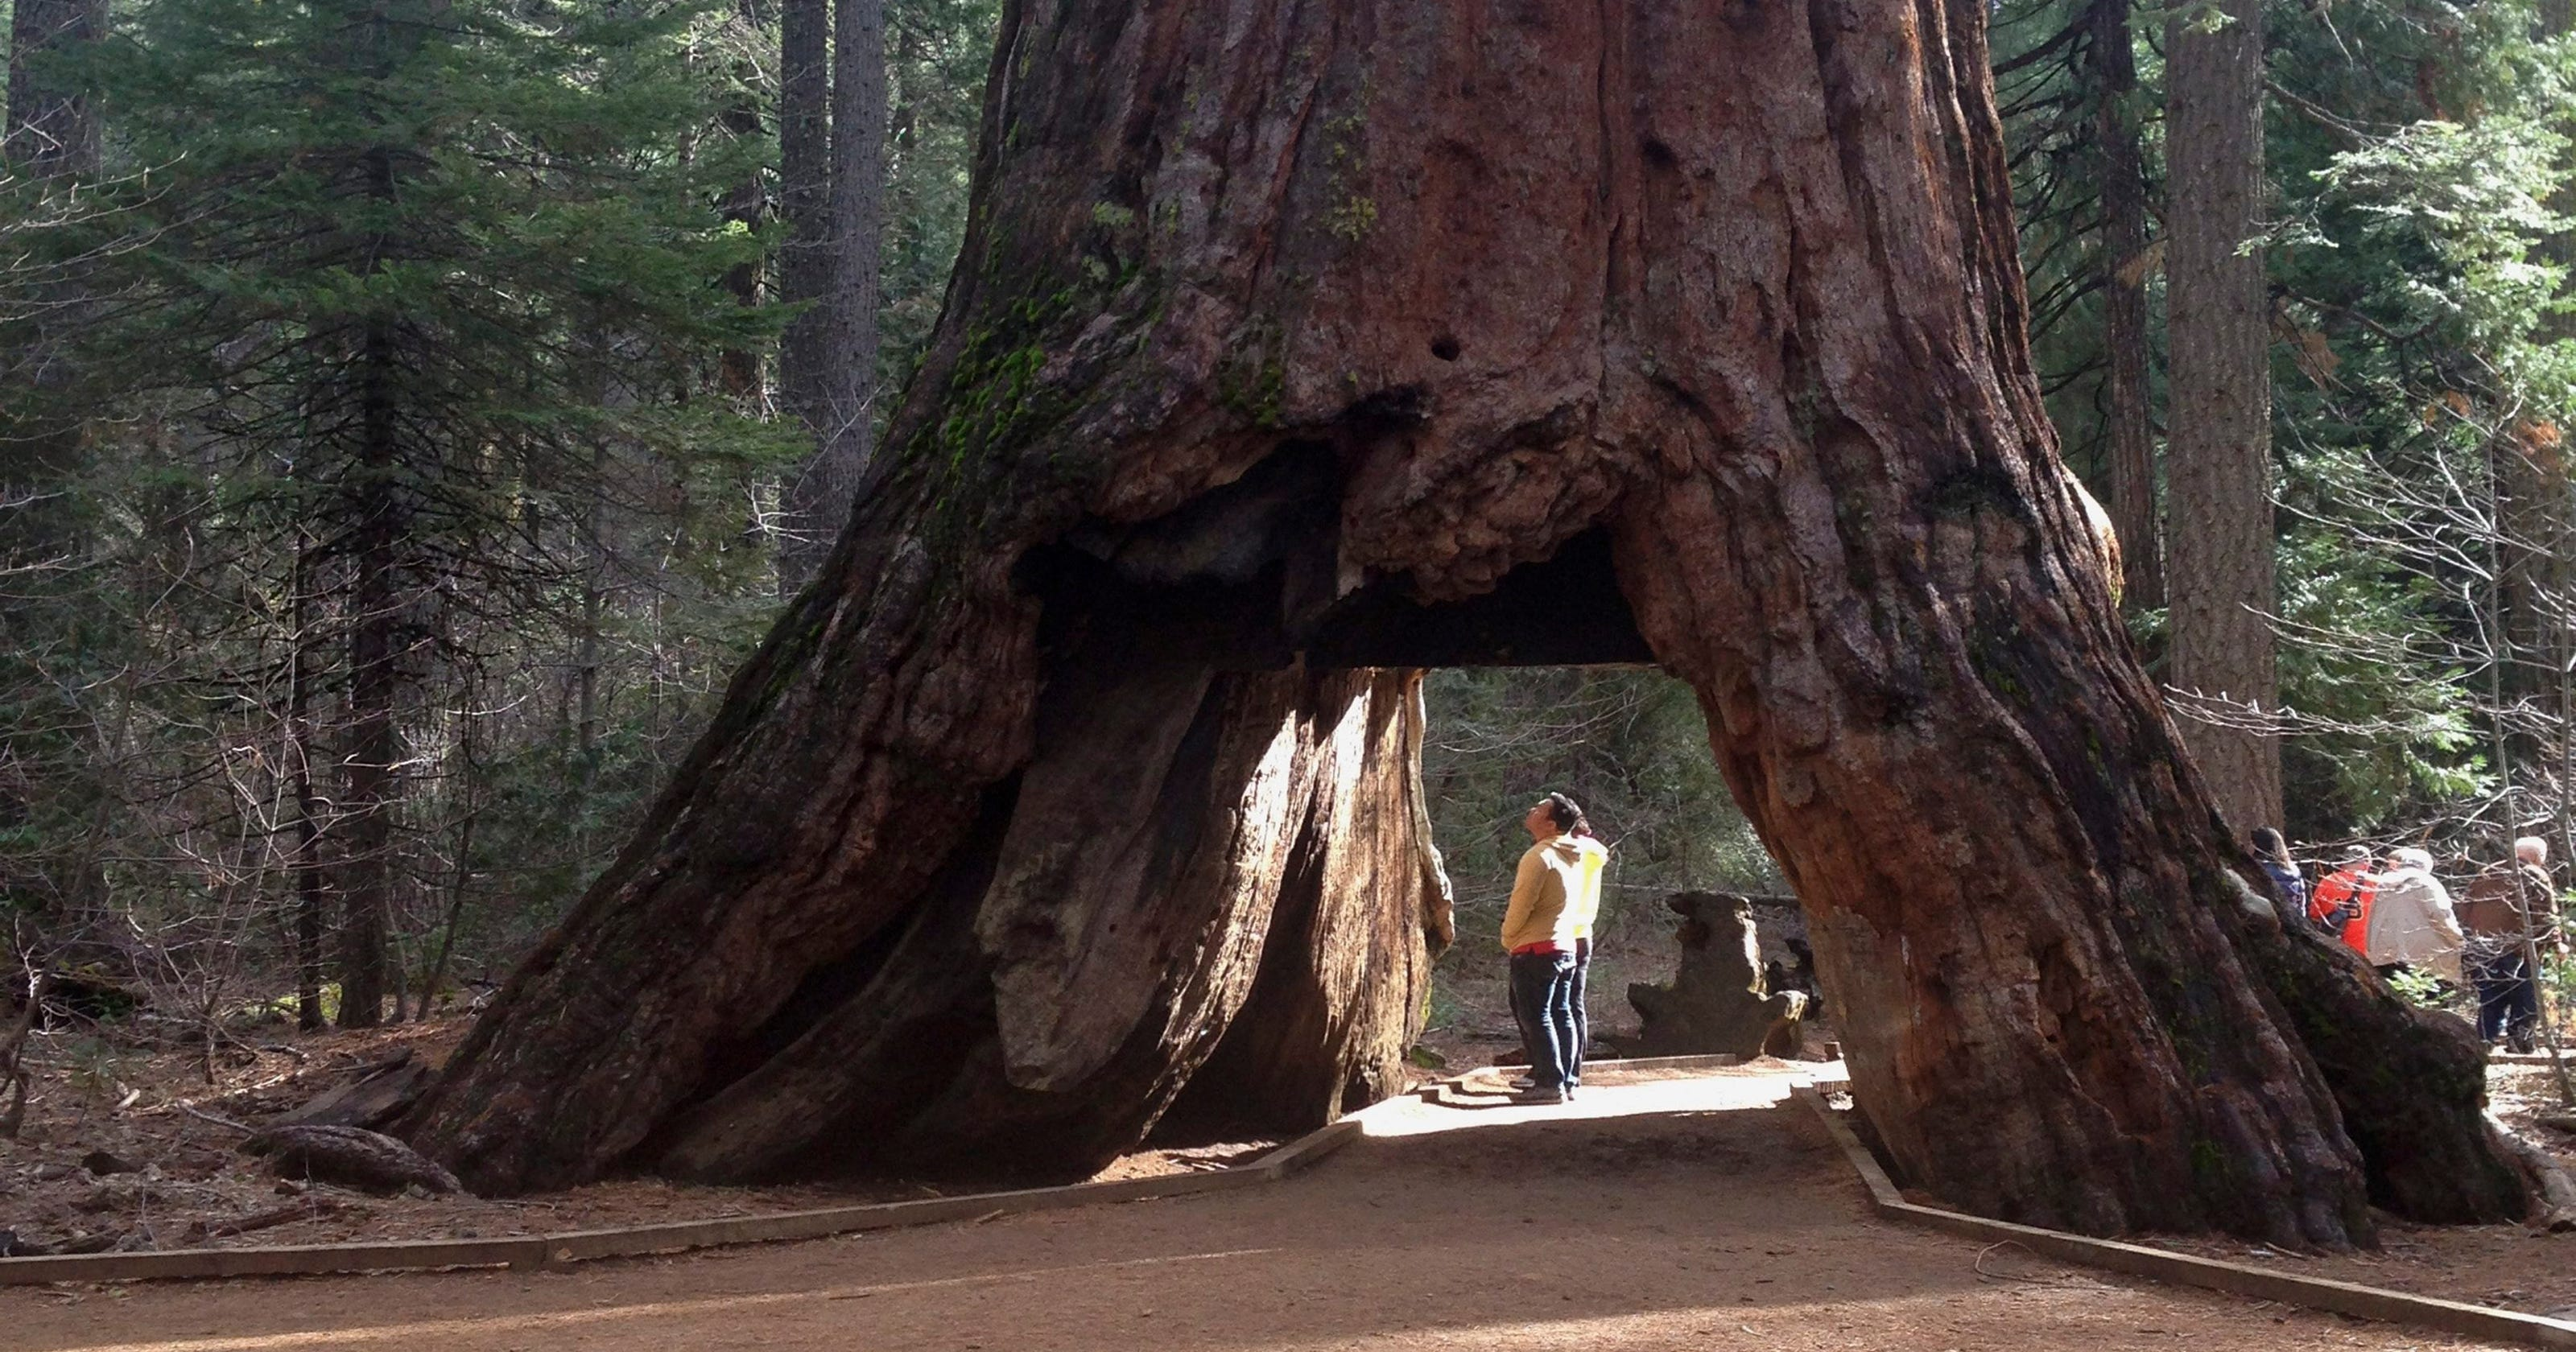 iconic california sequoia tunnel tree destroyed in storm